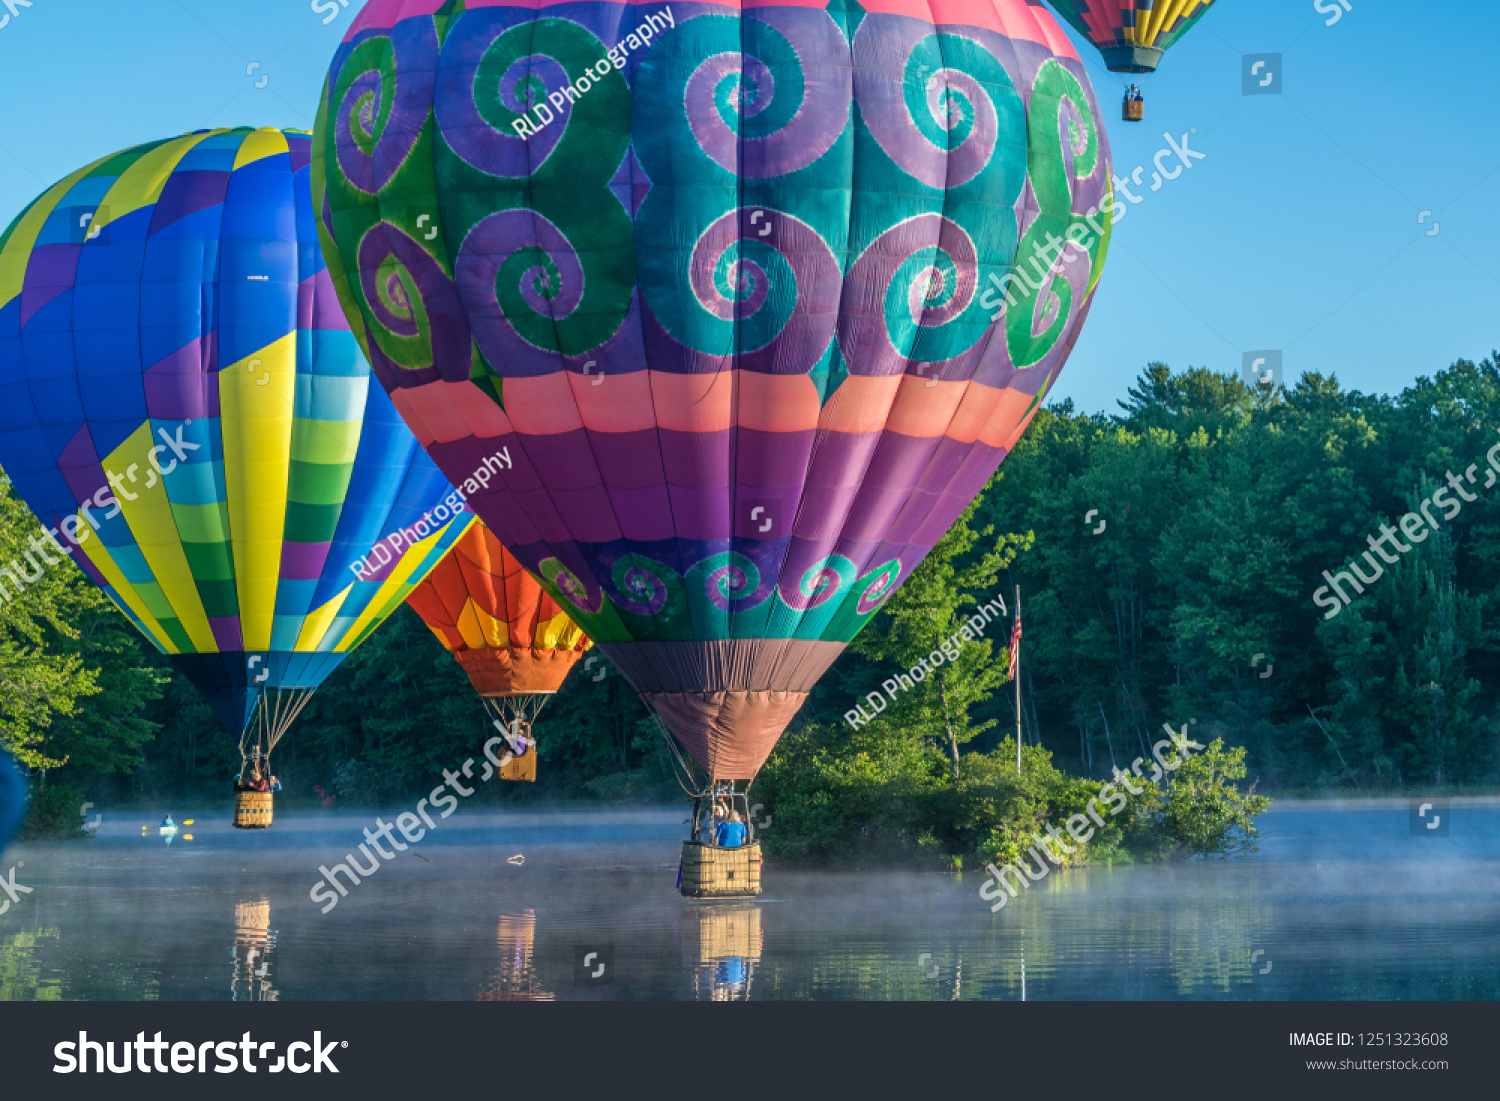 An image of hot air balloons performing skill maneuvers and an aerial ballet over an open body of water gently touching the surface and taking flight during a balloon rally.